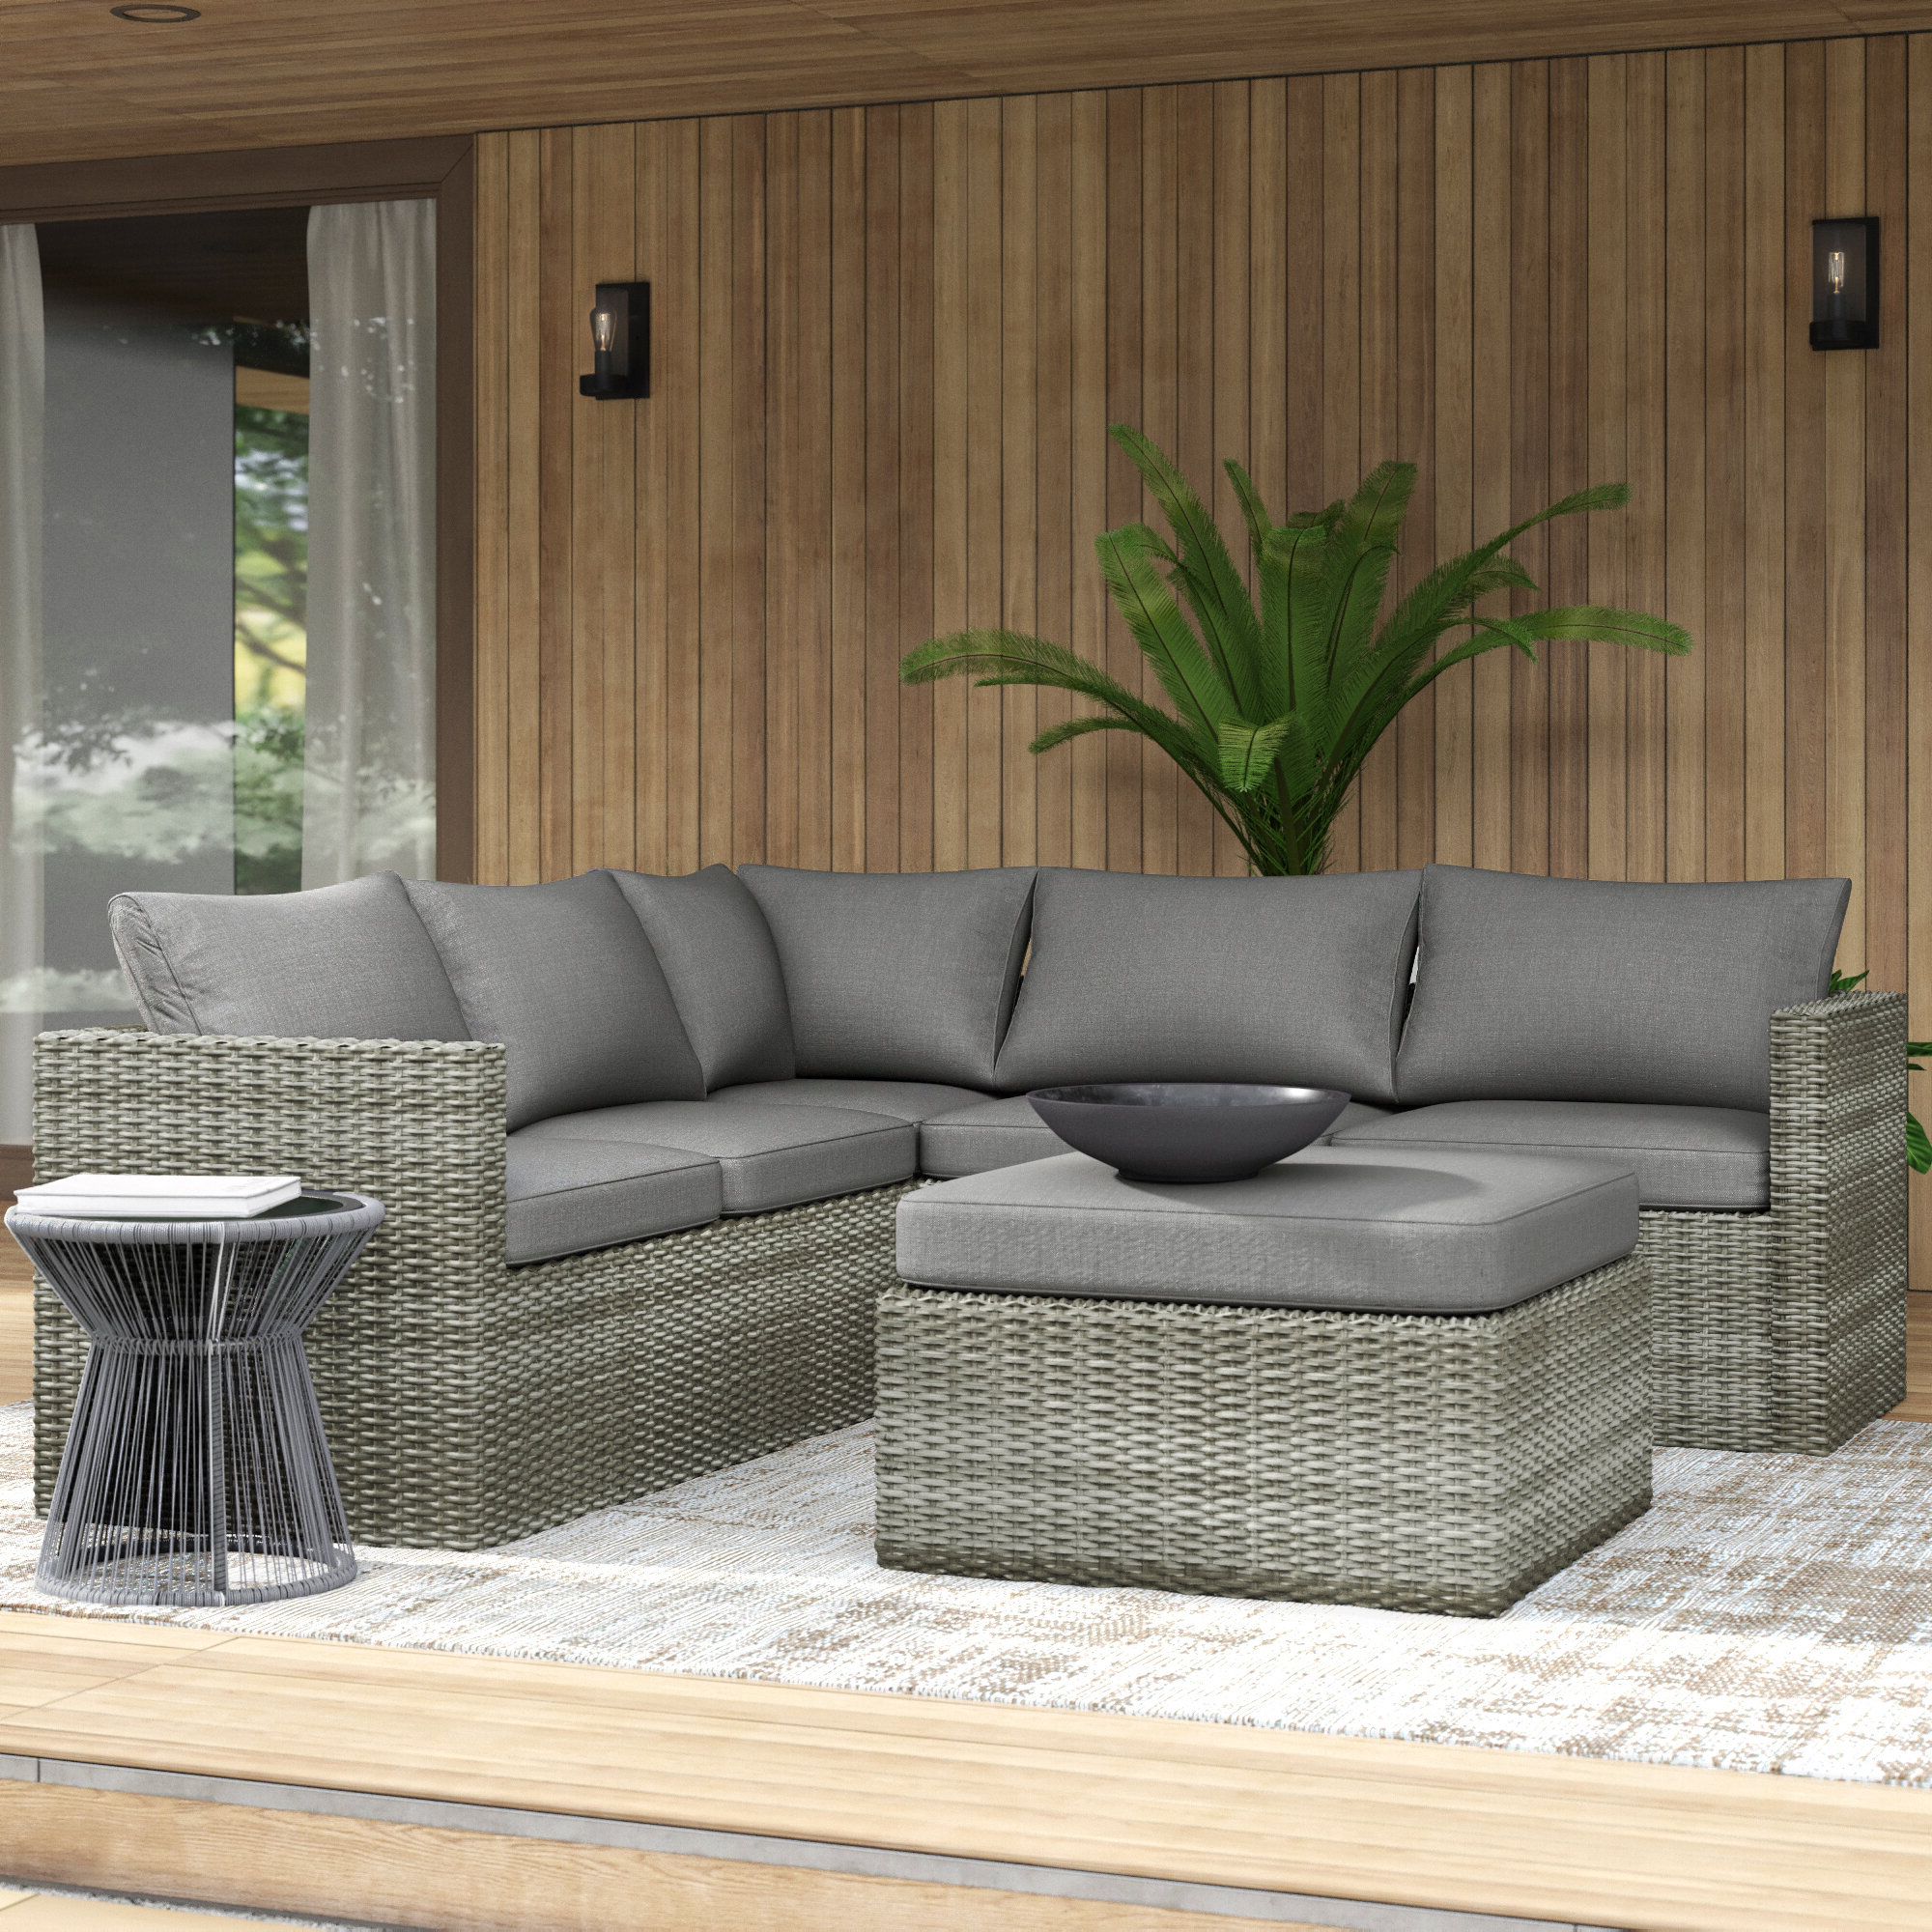 Purington Circular Patio Sectionals With Cushions In Well Known Lorentzen Patio Sectional With Cushions (View 14 of 20)